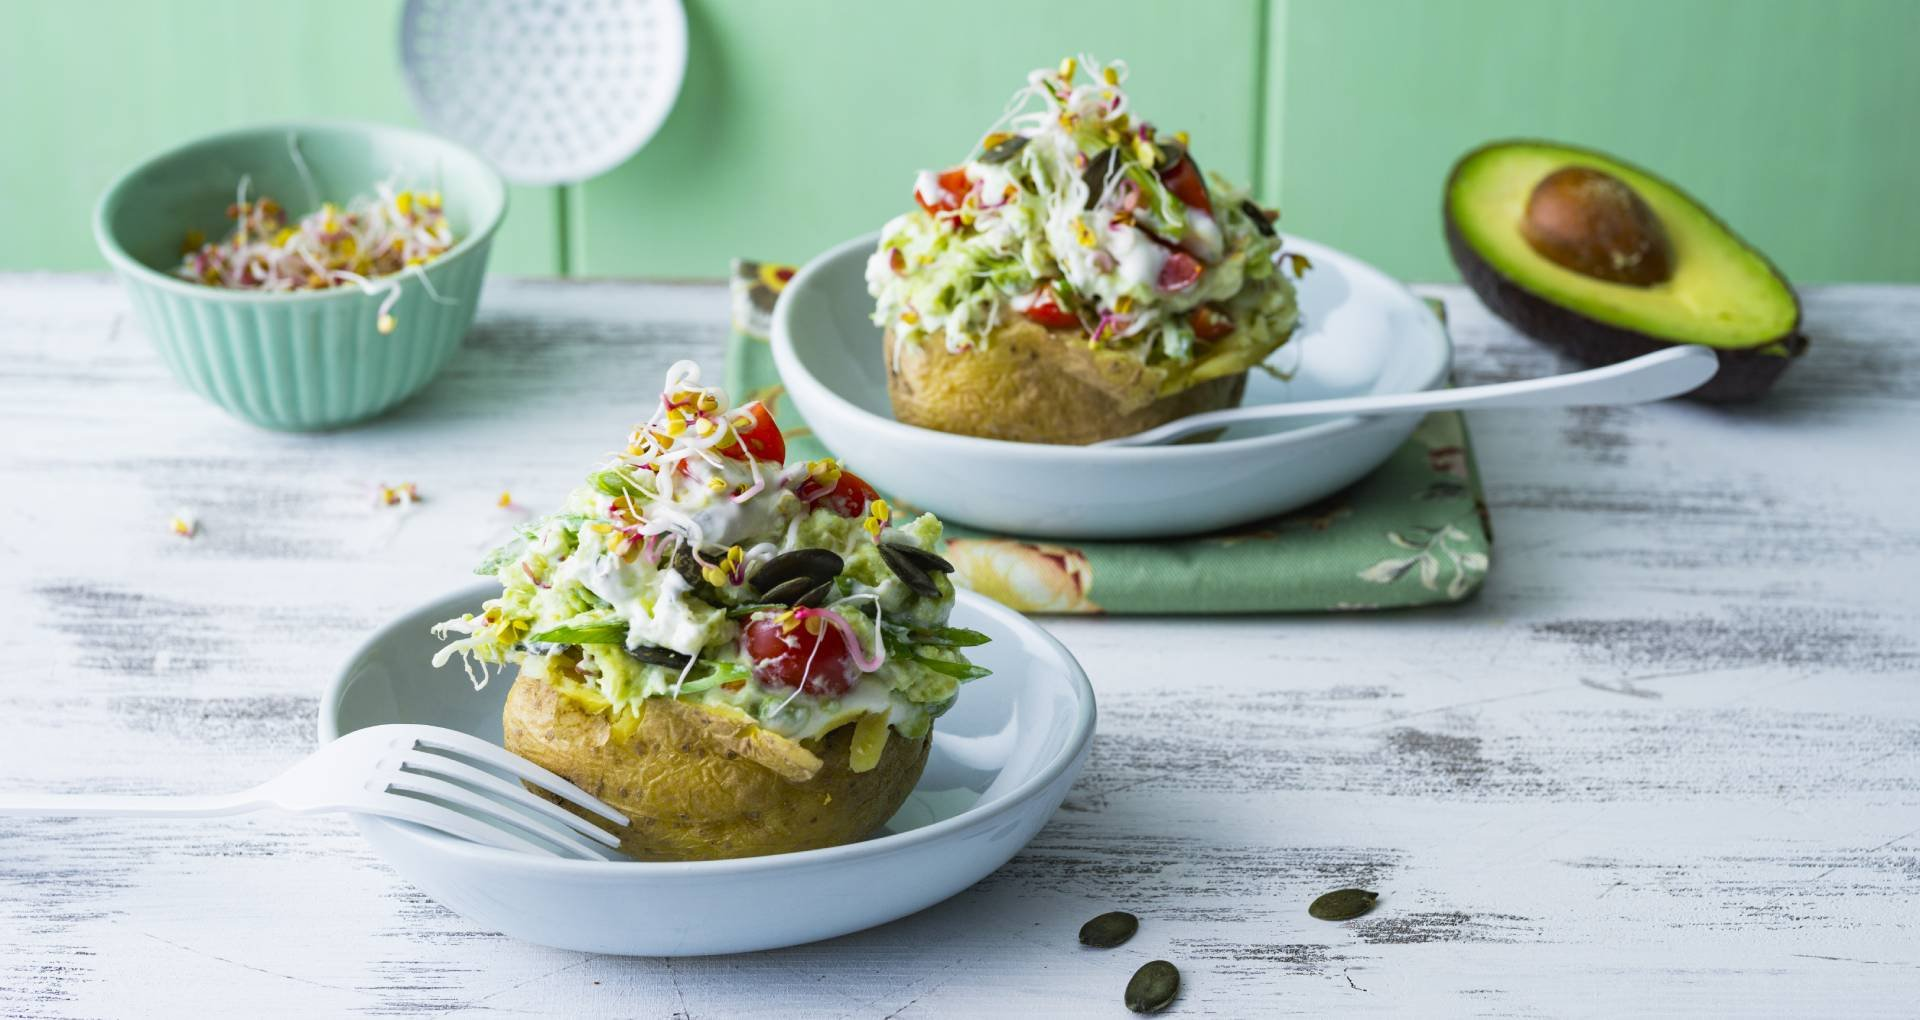 How to cook a baked potato